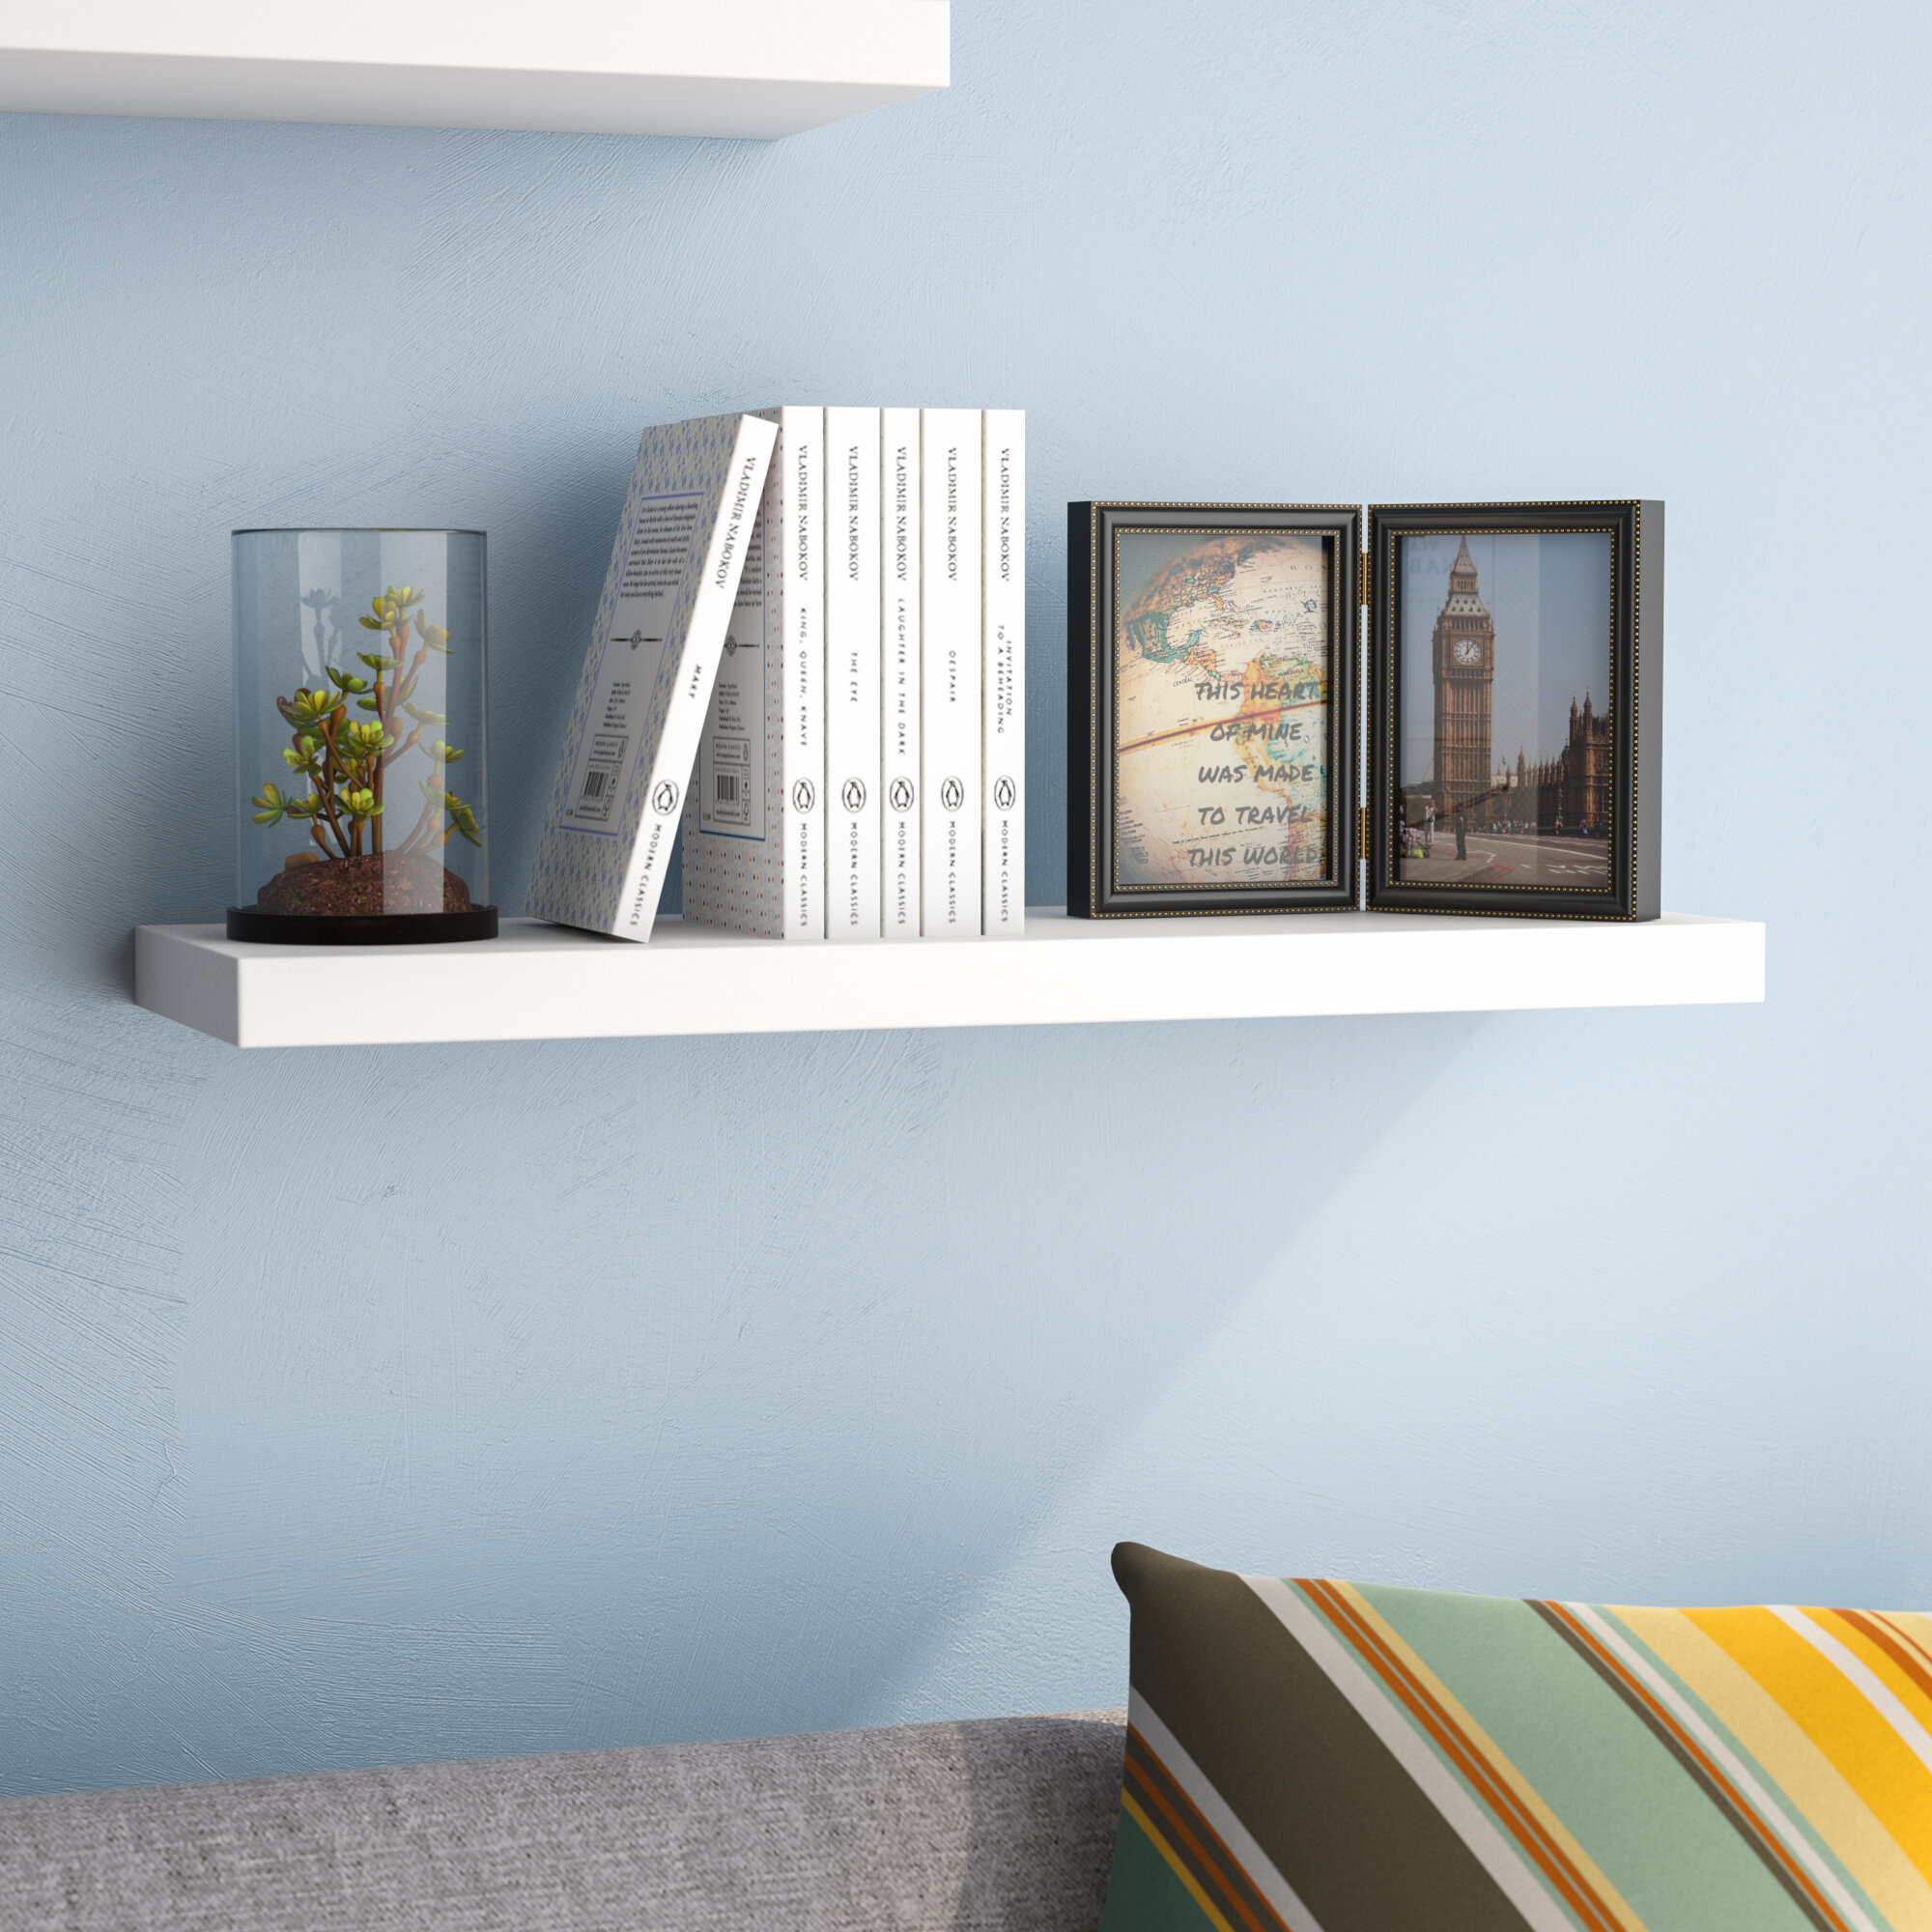 Exceptional Ebern Designs Board Line Floating Wall Shelf U0026 Reviews | Wayfair